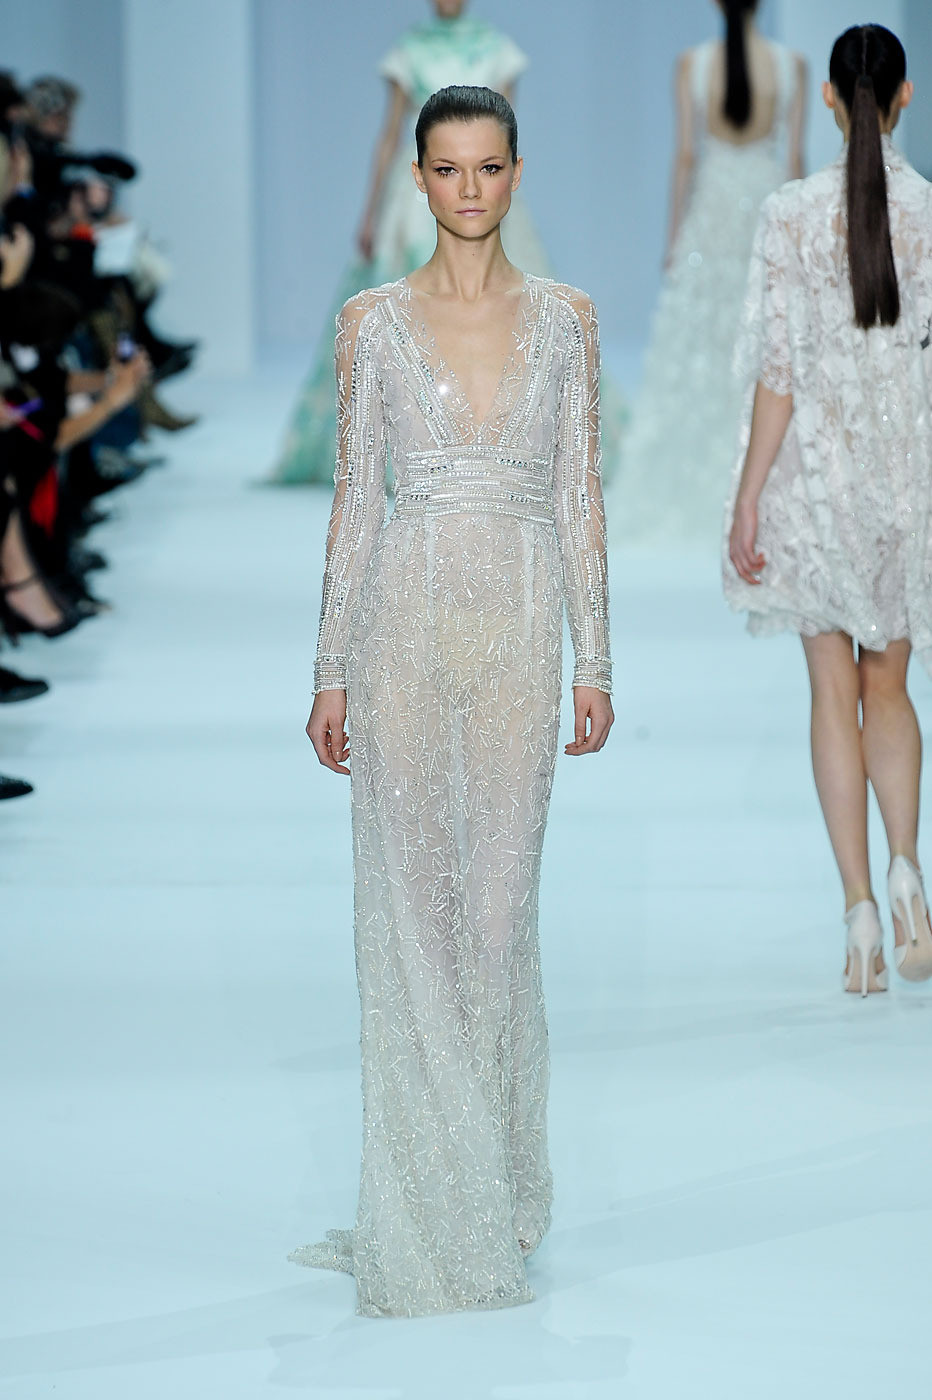 Elie Saab Couture - Angelina Jolie\'s Wedding Dress Possibilities ...